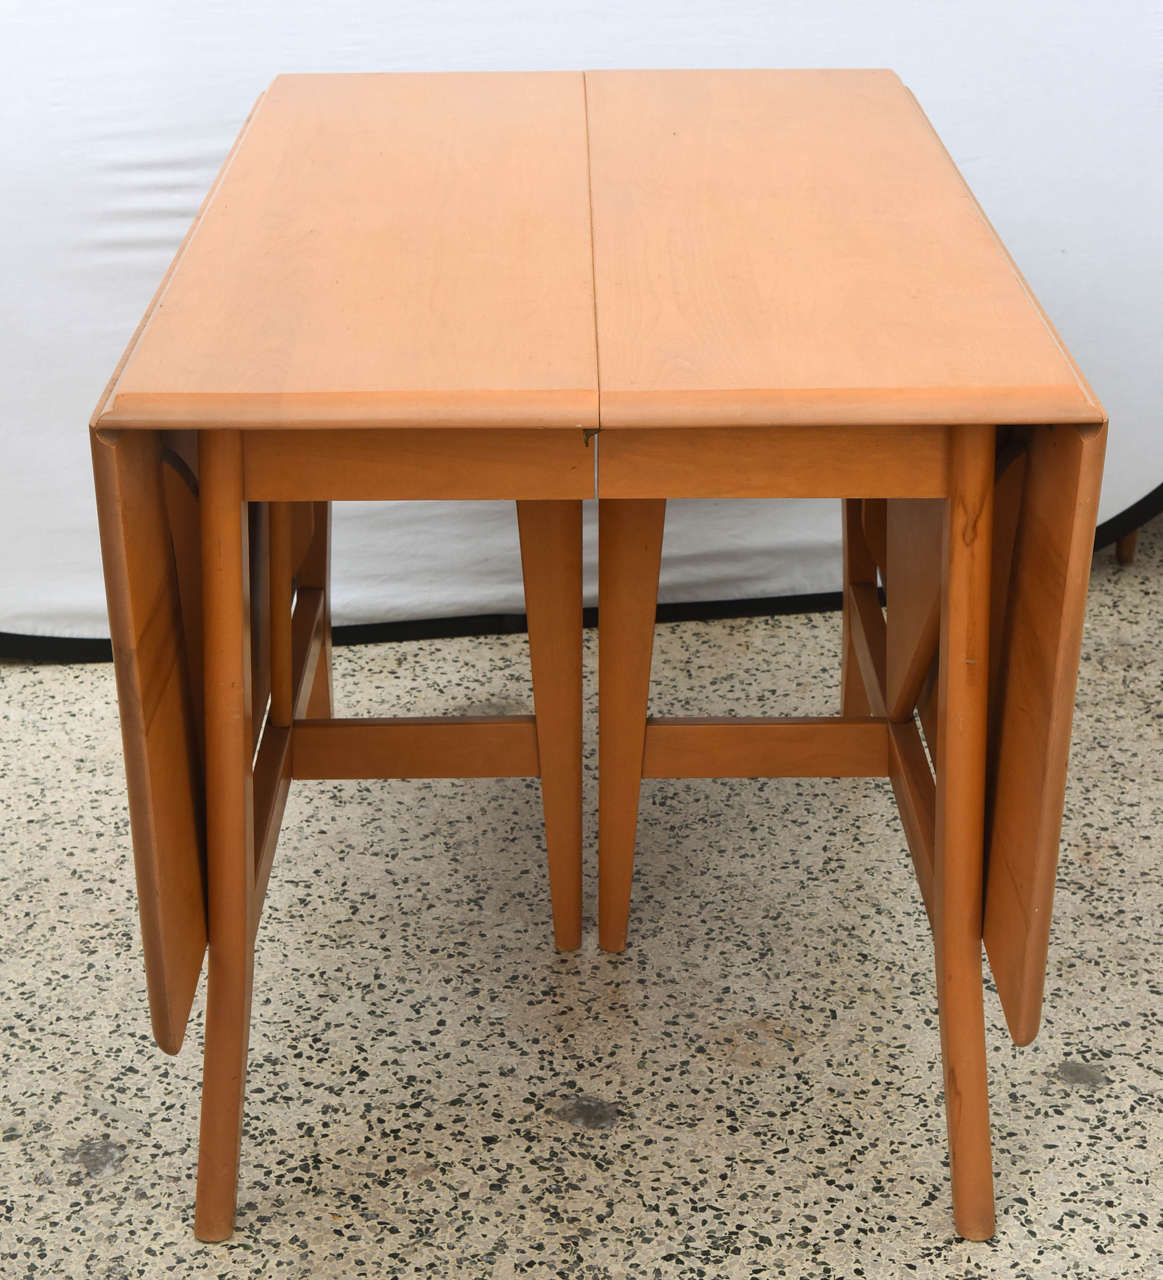 Wondrous Maple Heywood Wakefield Drop Leaf Dining Table 1950S Interior Design Ideas Philsoteloinfo